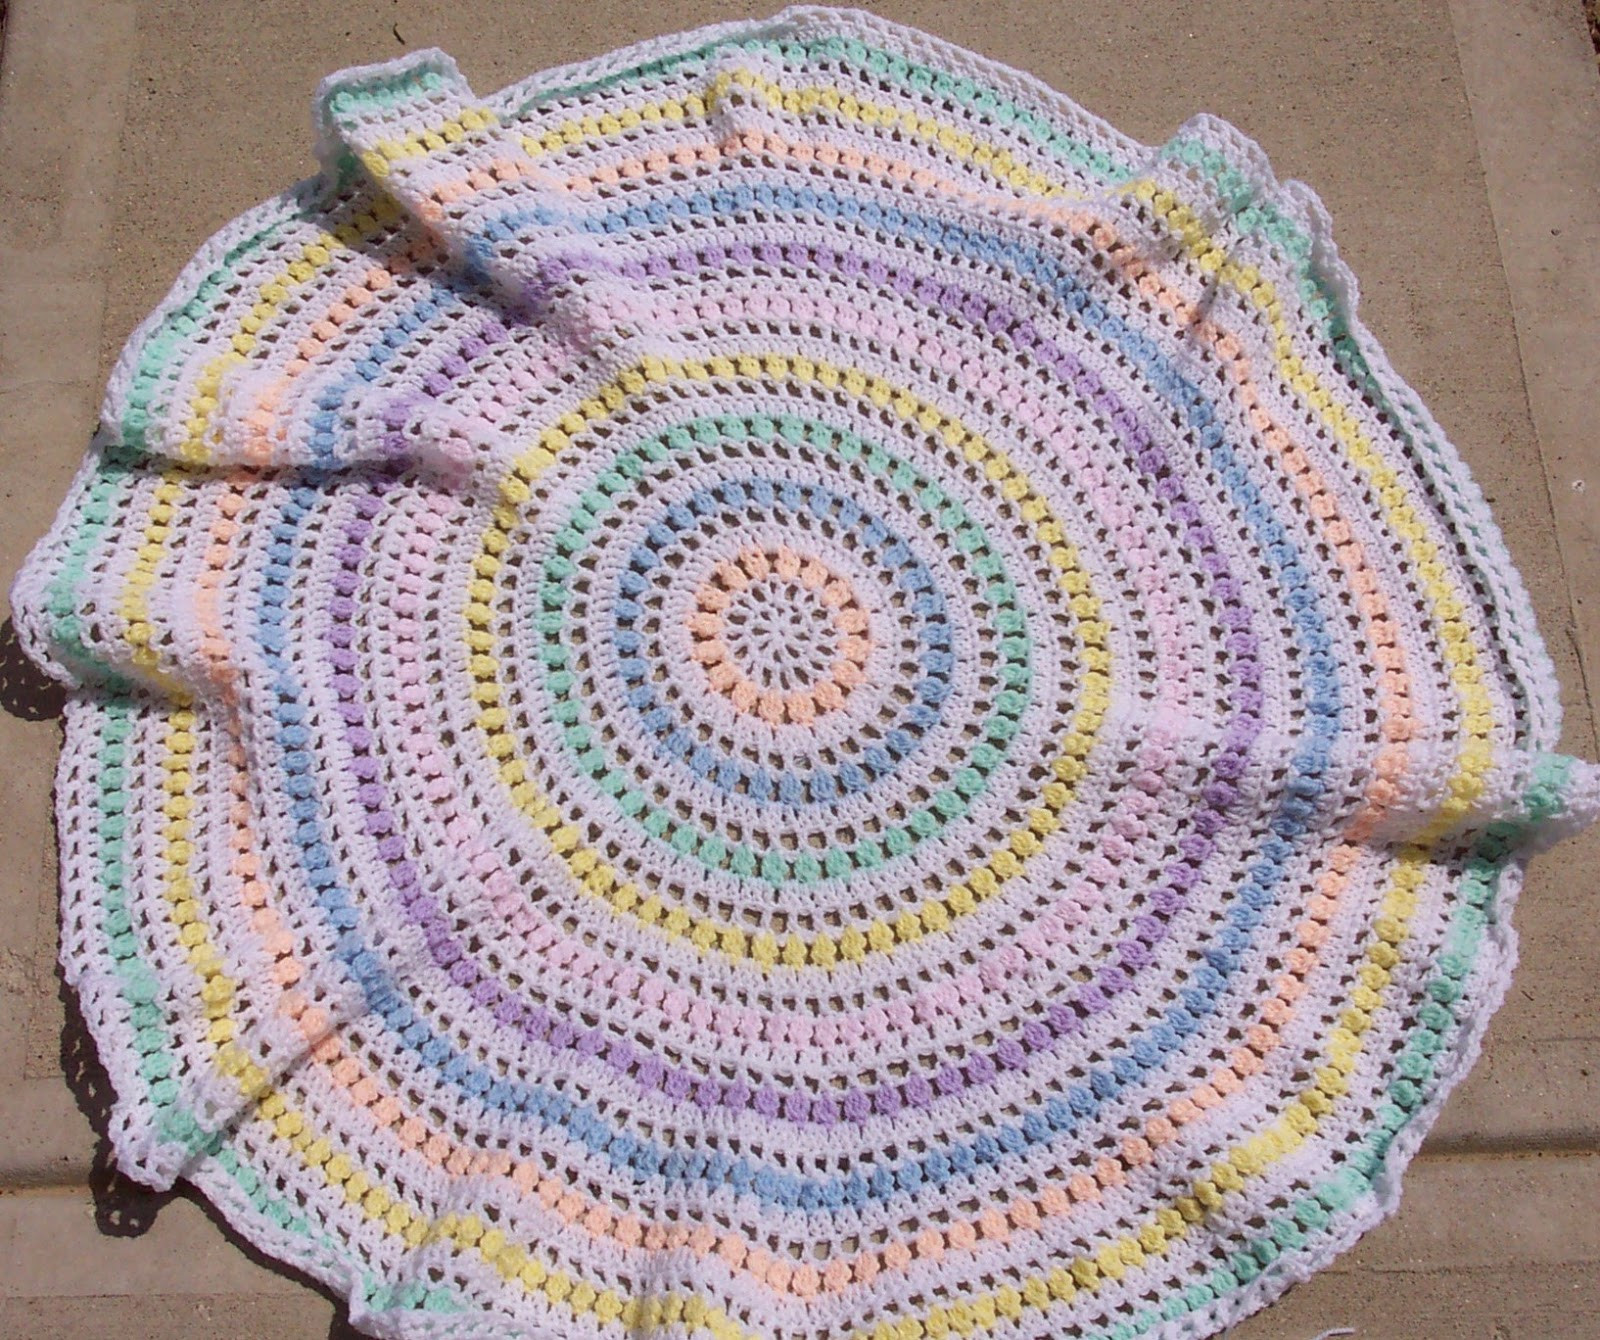 Unique Smoothfox Crochet and Knit Smoothfox S Spring Circle Crochet Round Baby Blanket Of Luxury 42 Ideas Crochet Round Baby Blanket